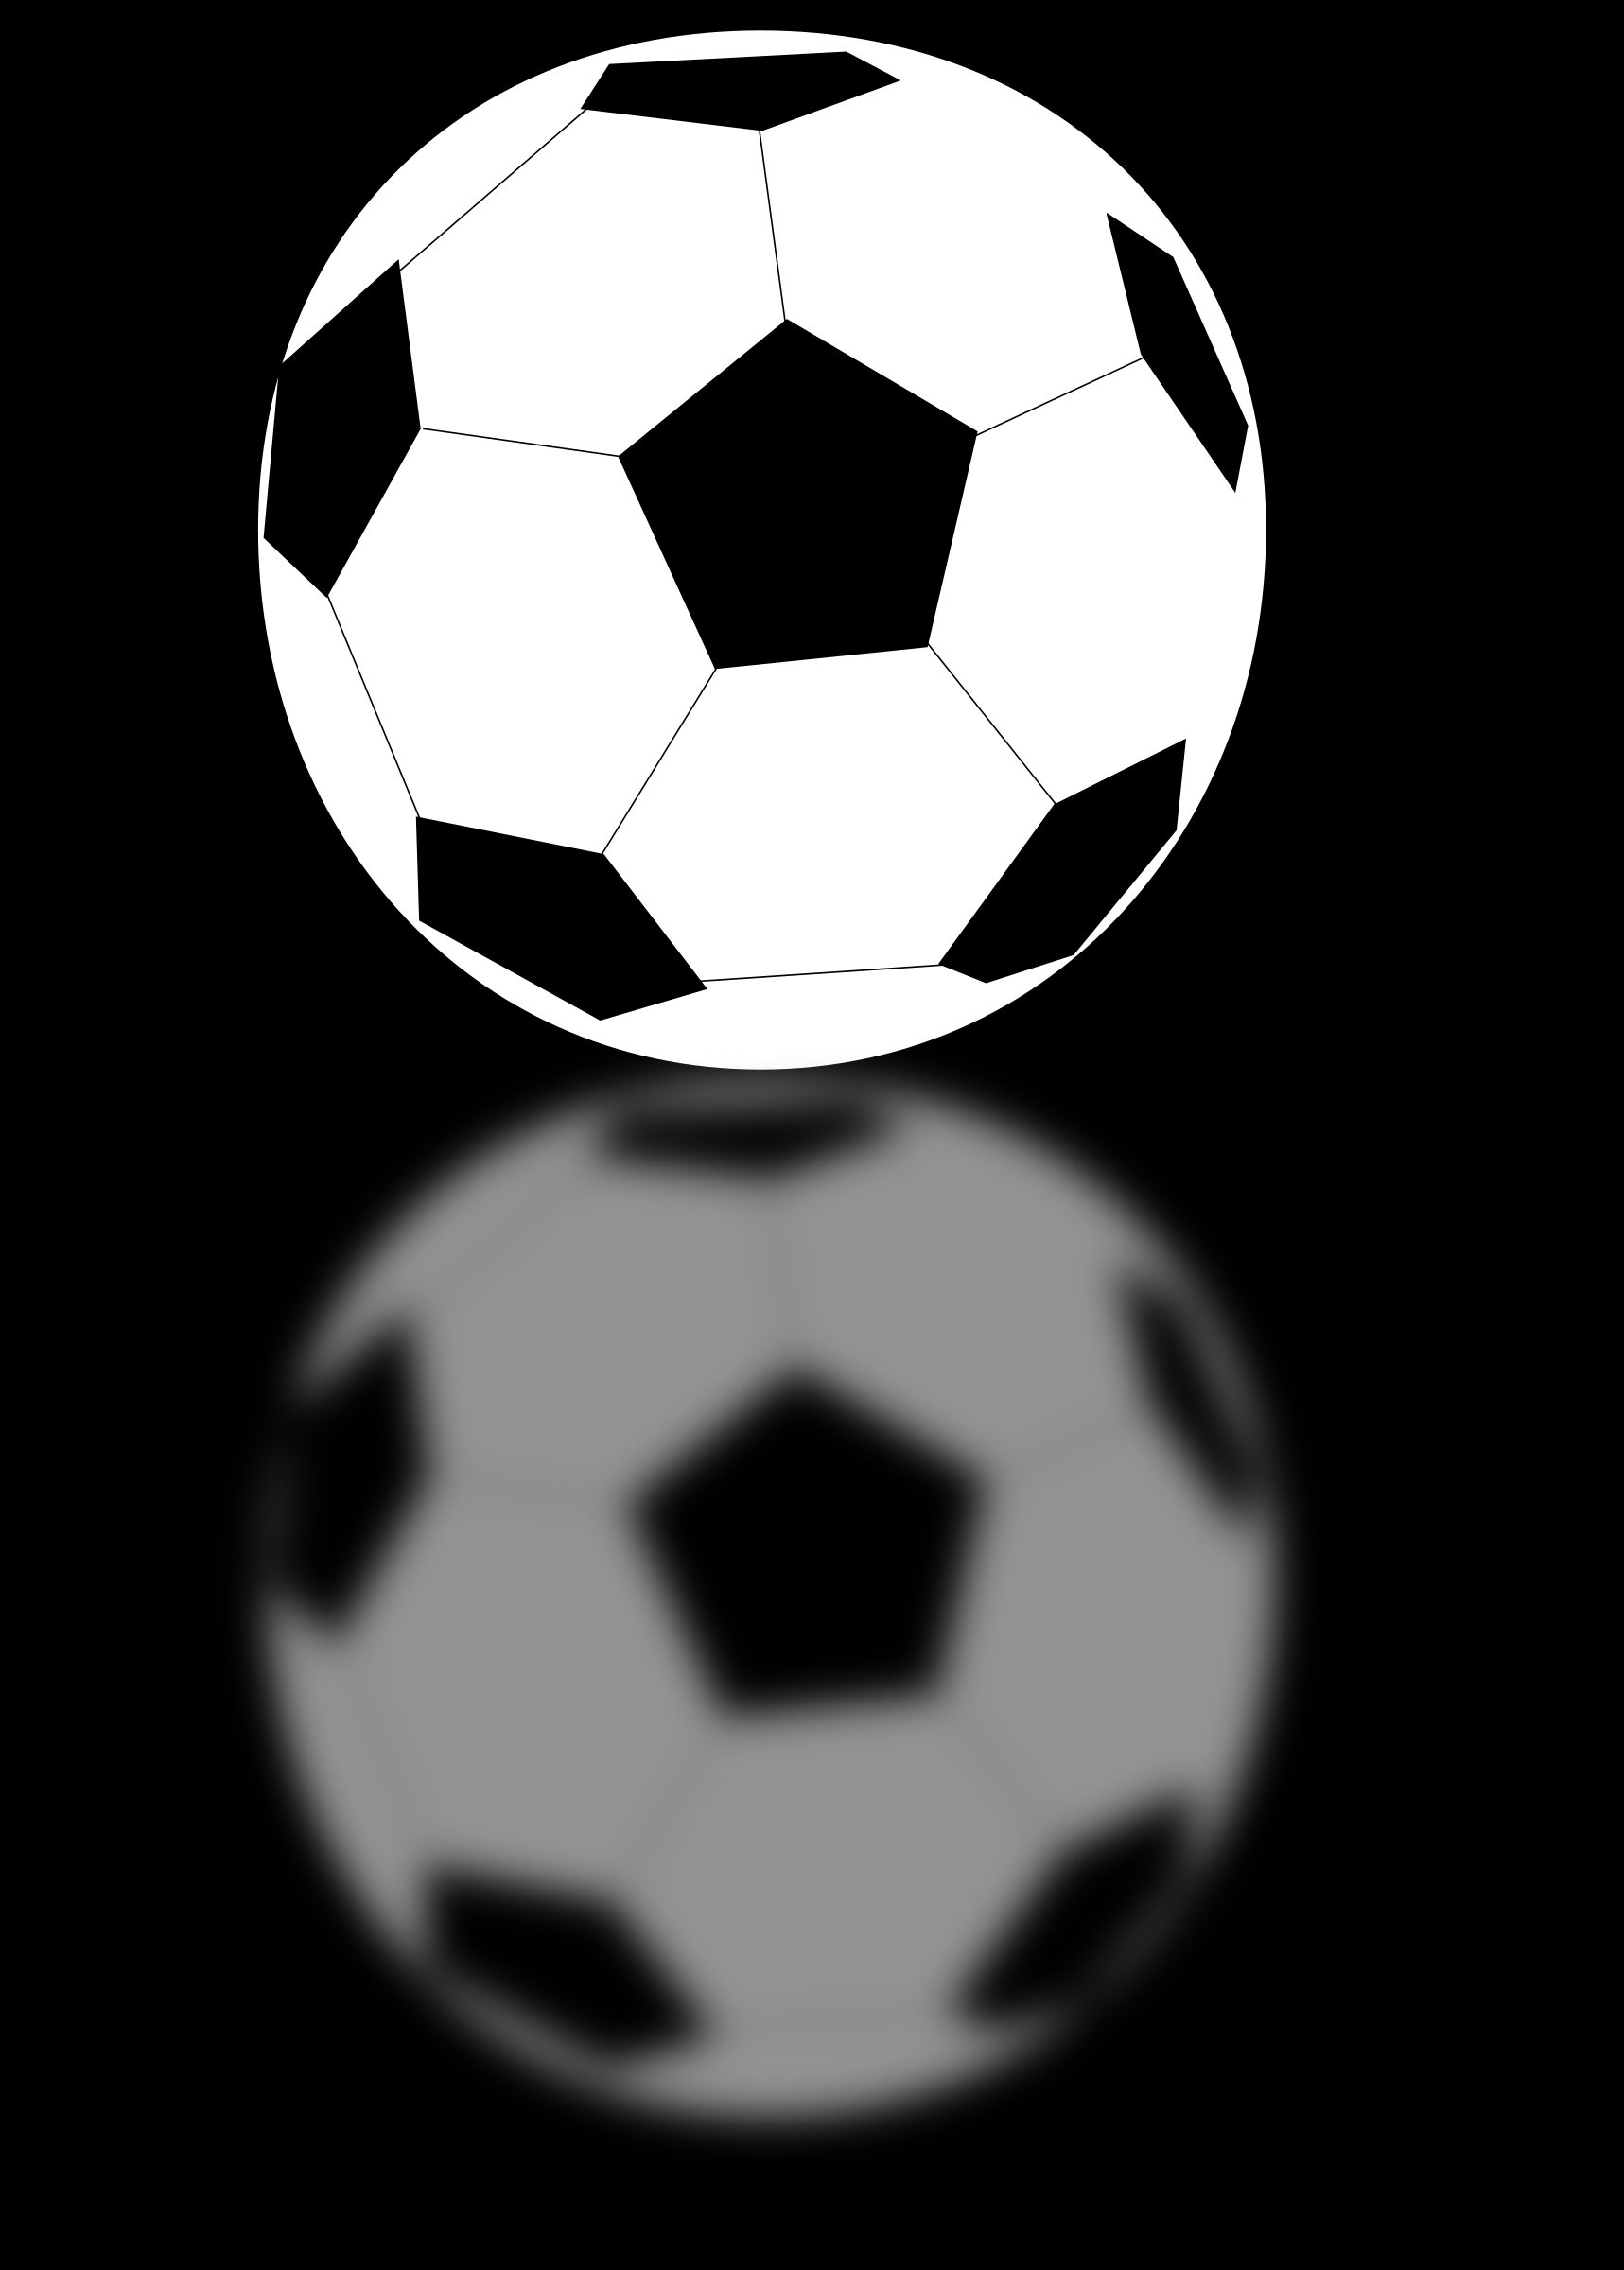 balon colombiano / Soccer ball by german velez